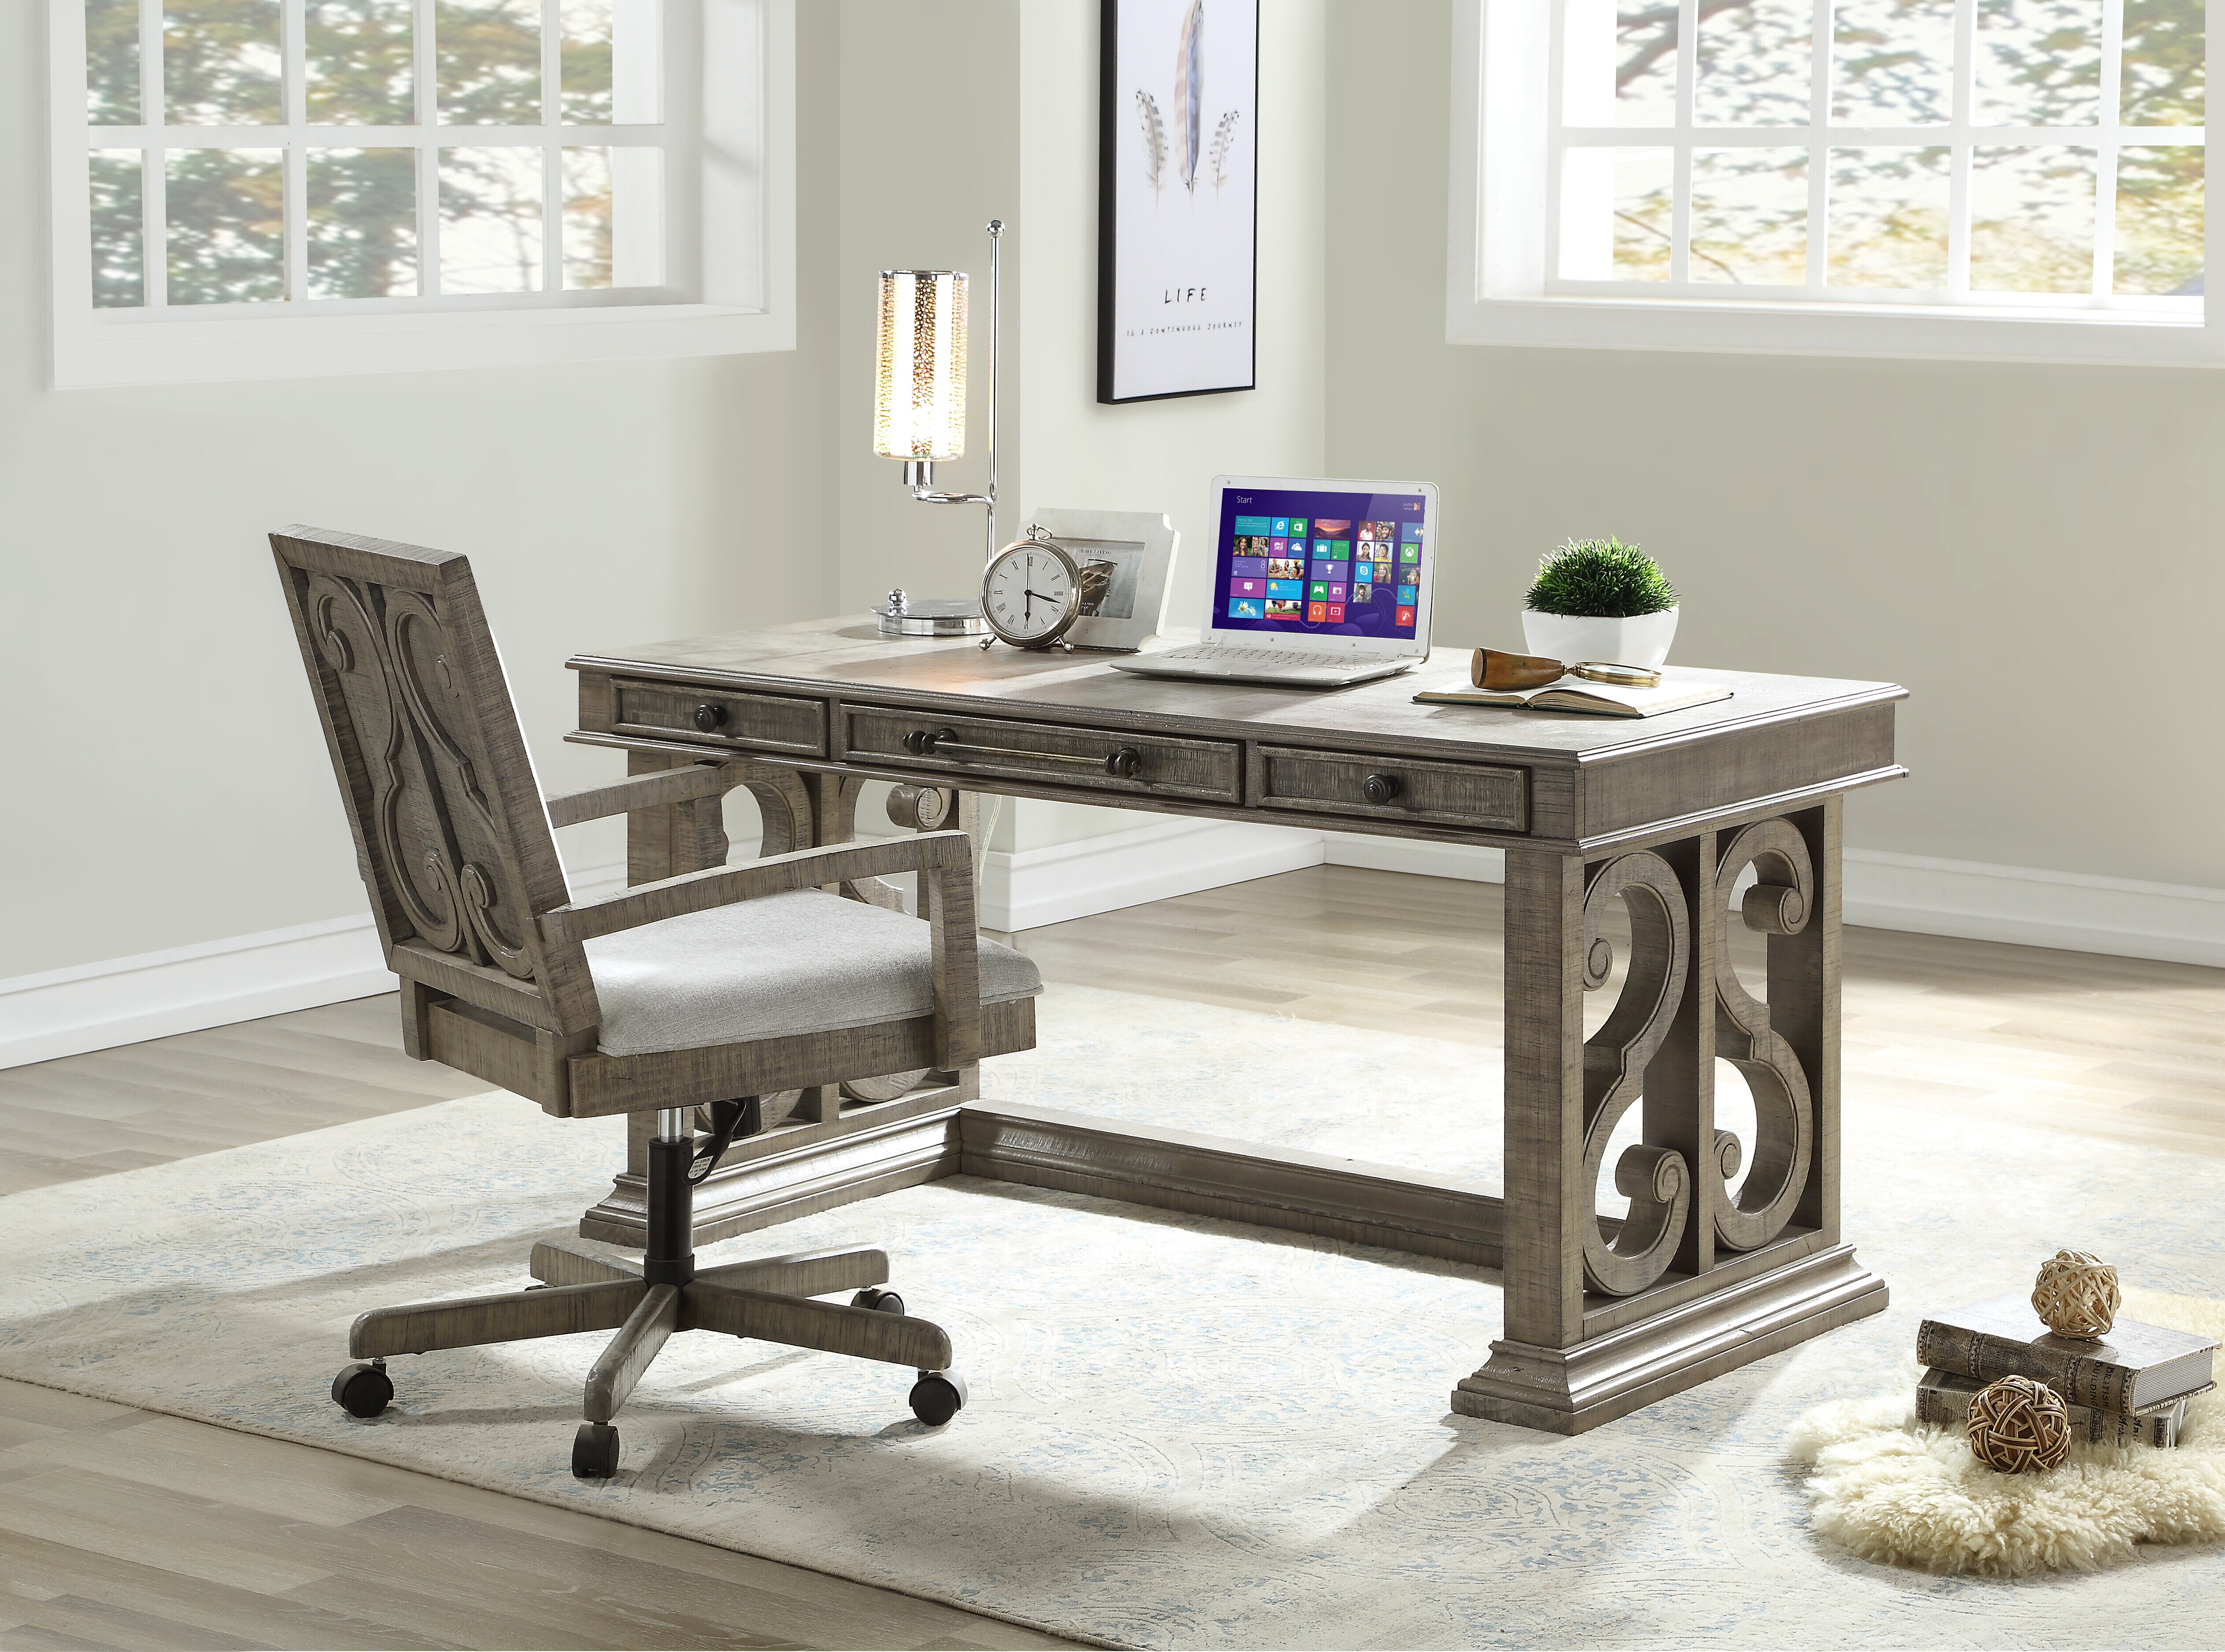 Counter Height Desk Office Furniture Sets You Ll Love In 2021 Wayfair